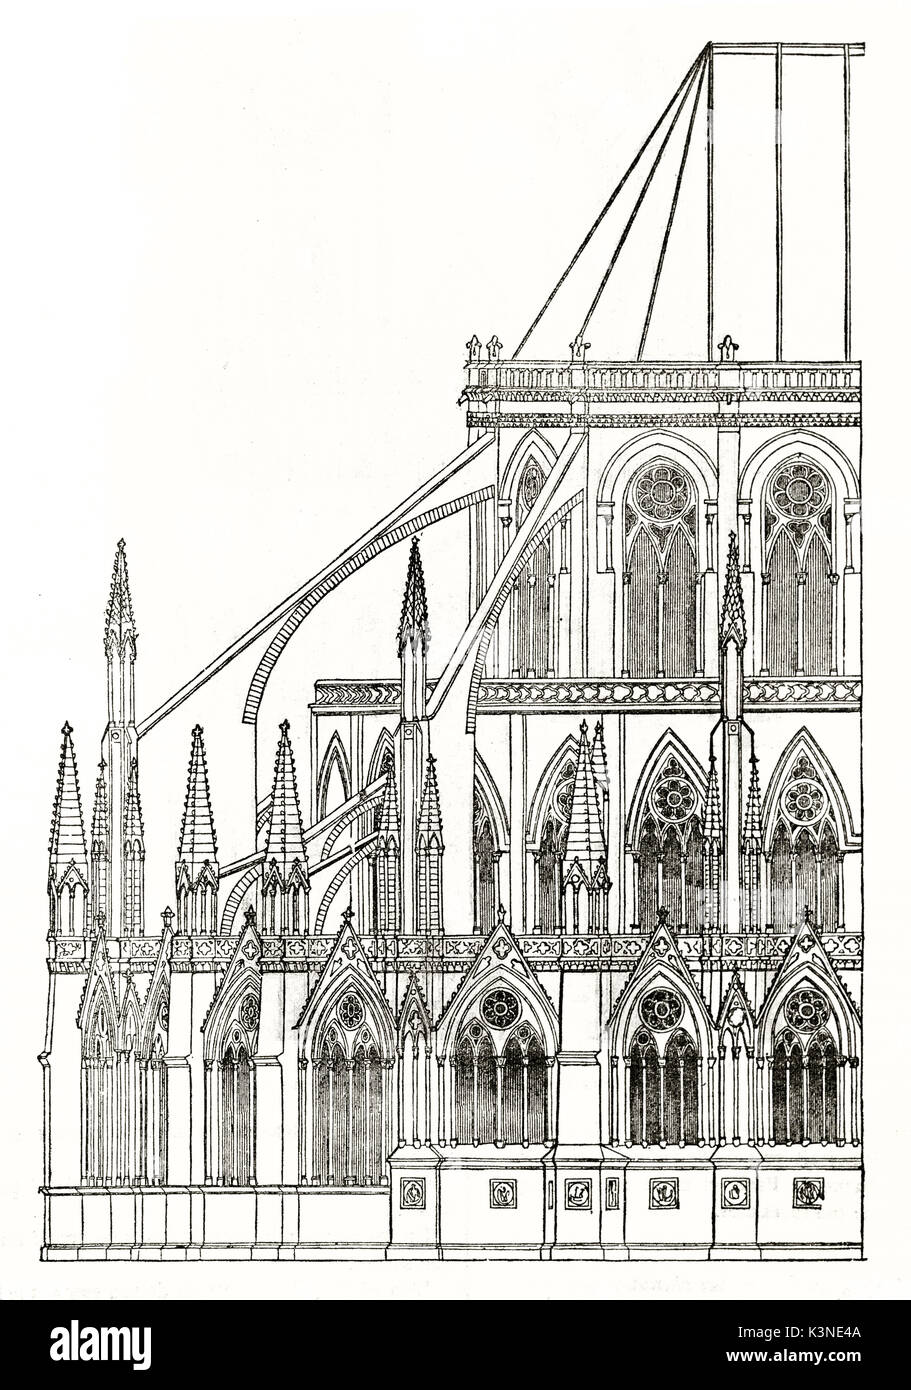 ancient detail of Notre-Dame cathedral apse exterior with his typical pointed arches, windows and spears. Paris, Stock Photo